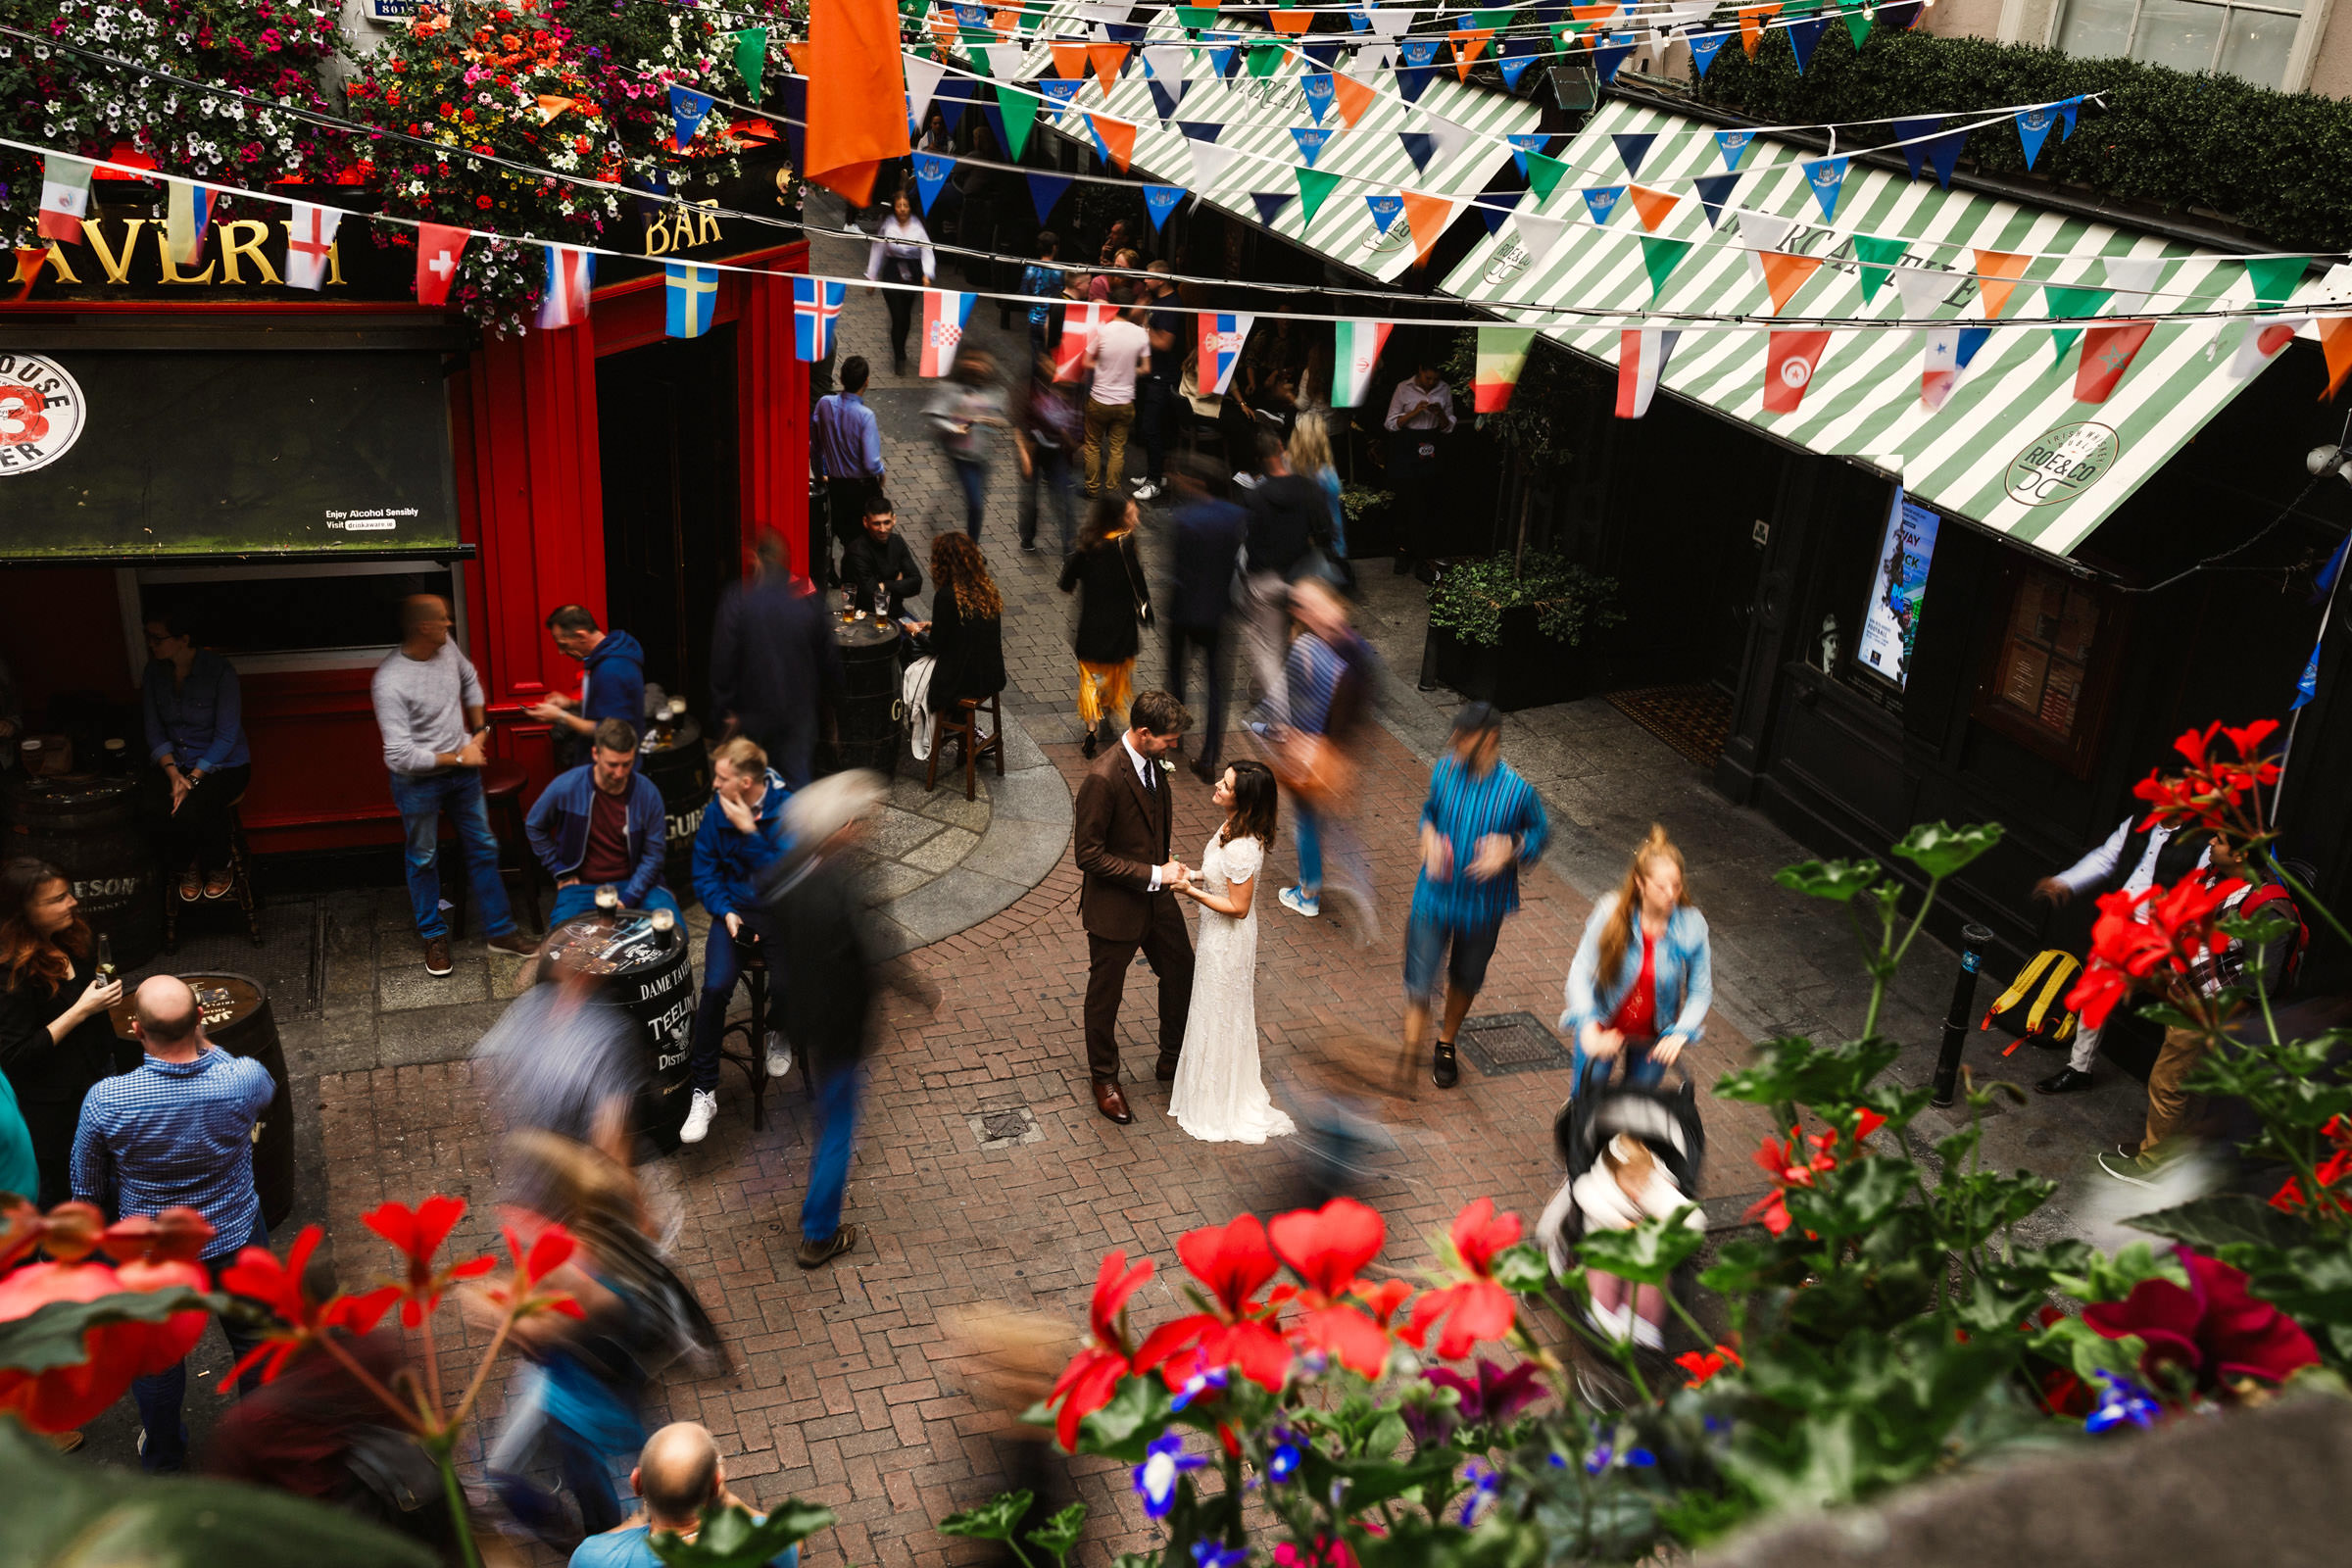 Dame-Lane-Dublin-aerial-view-of-couple-in-ireland-street-scene-with-colorful-bunting-lima-conlon-photography